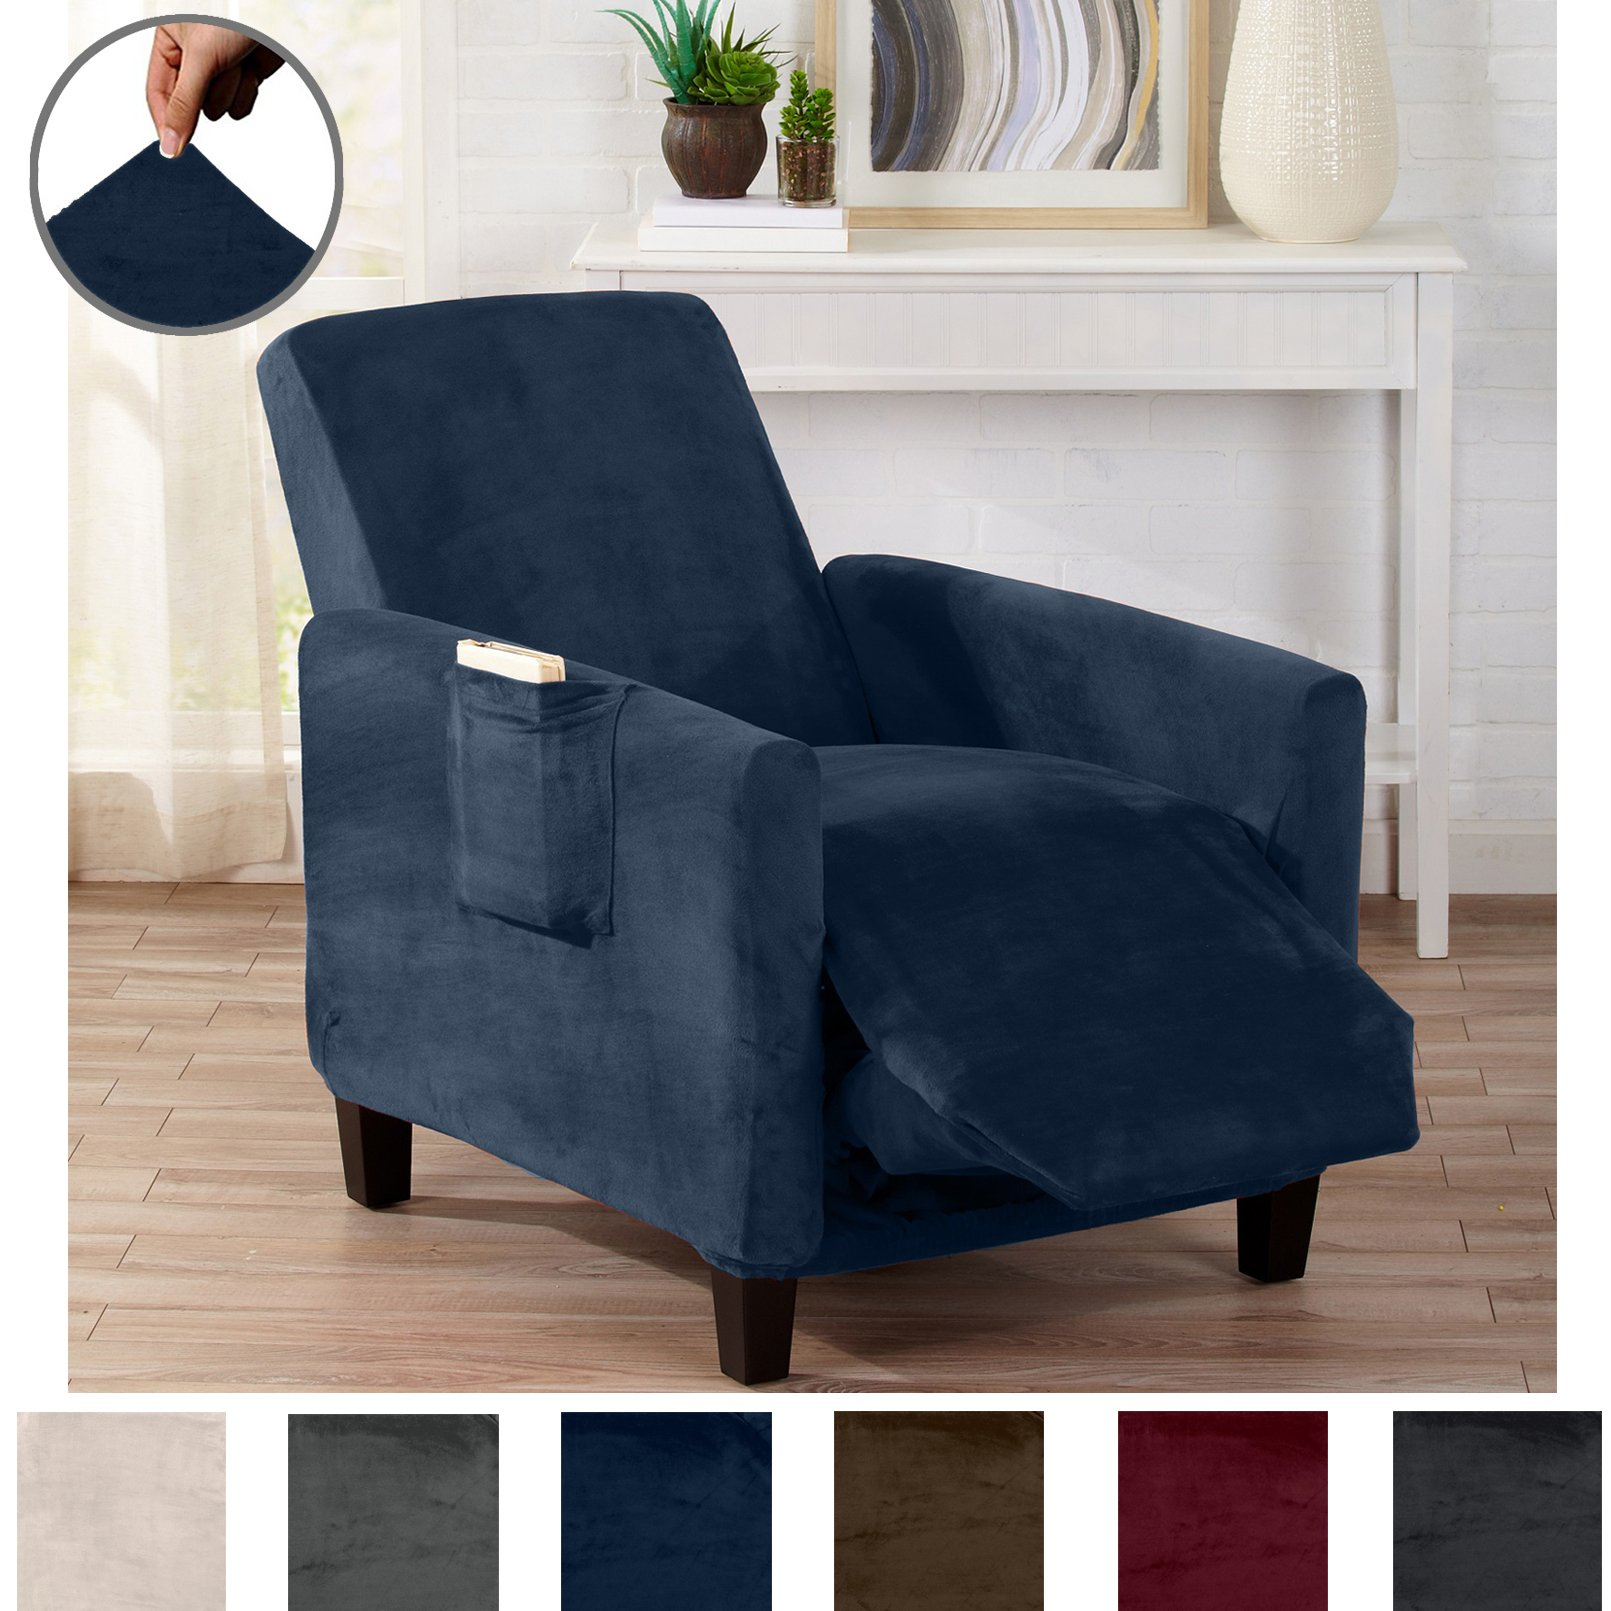 Great Bay Home Modern Velvet Plush Strapless Slipcover. Form Fit Stretch, Stylish Furniture Cover/Protector. Gale Collection Brand. (Recliner, Dark Denim Blue)